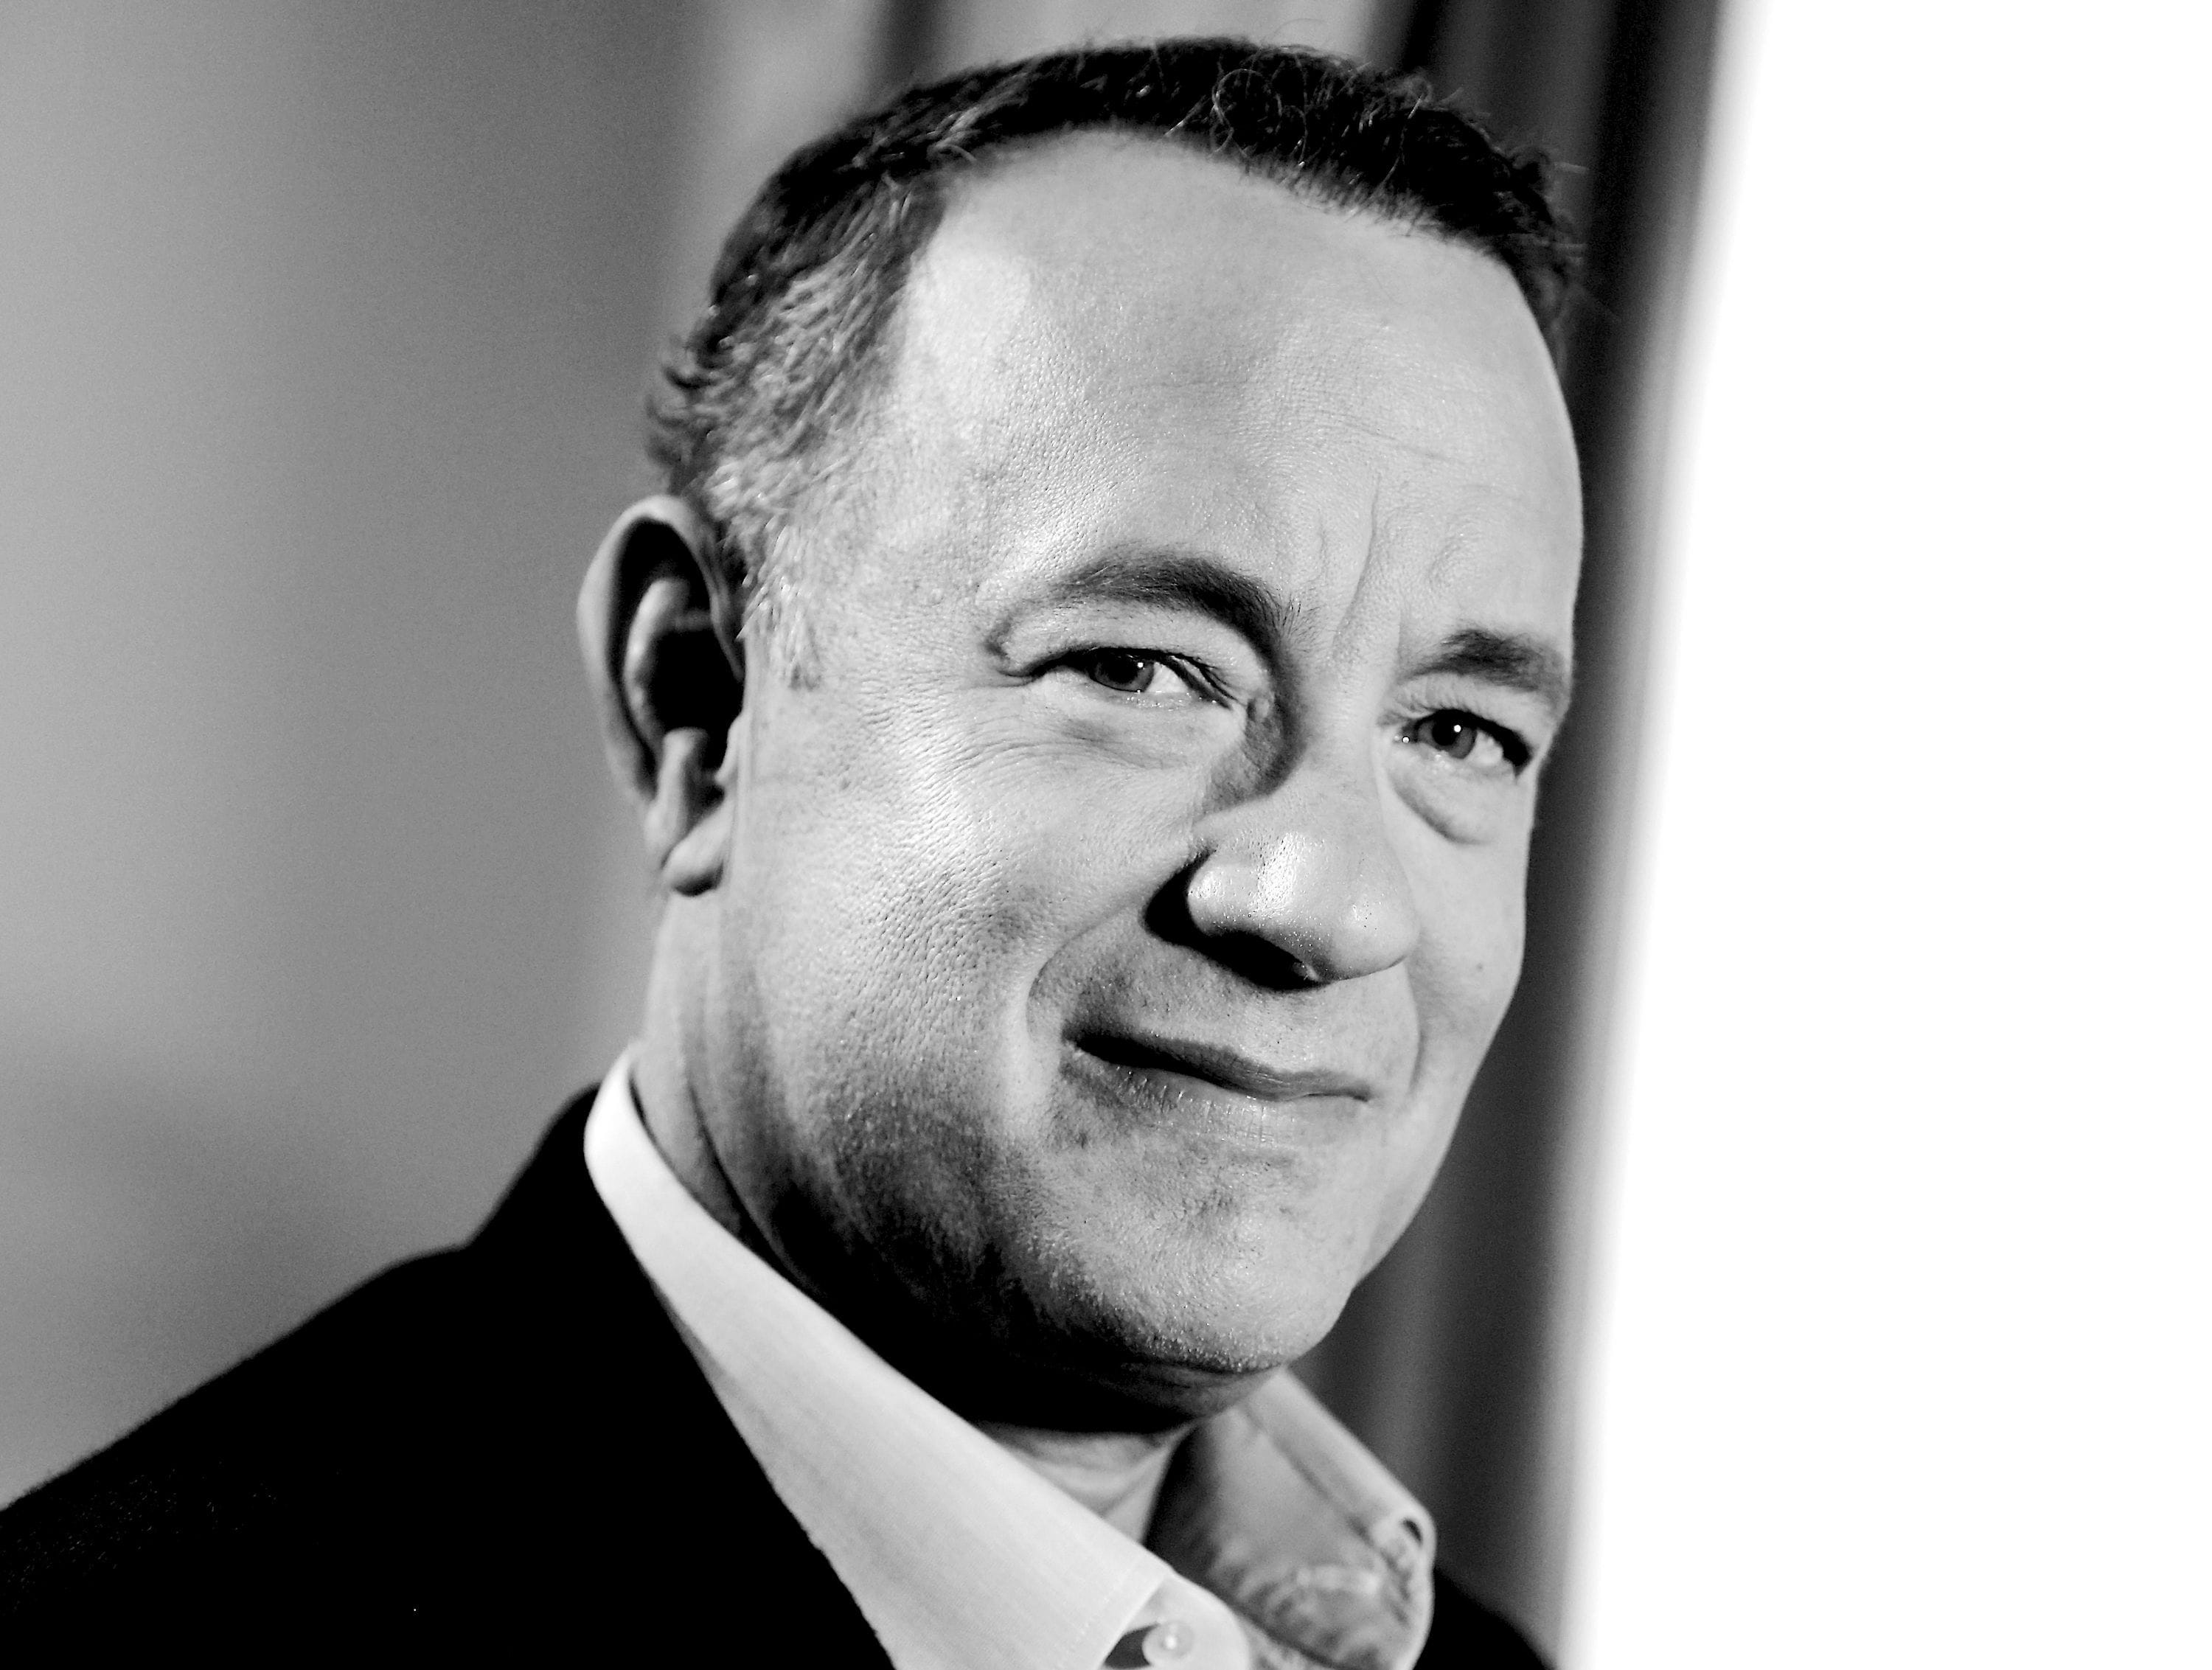 Tom Hanks Wallpapers hd